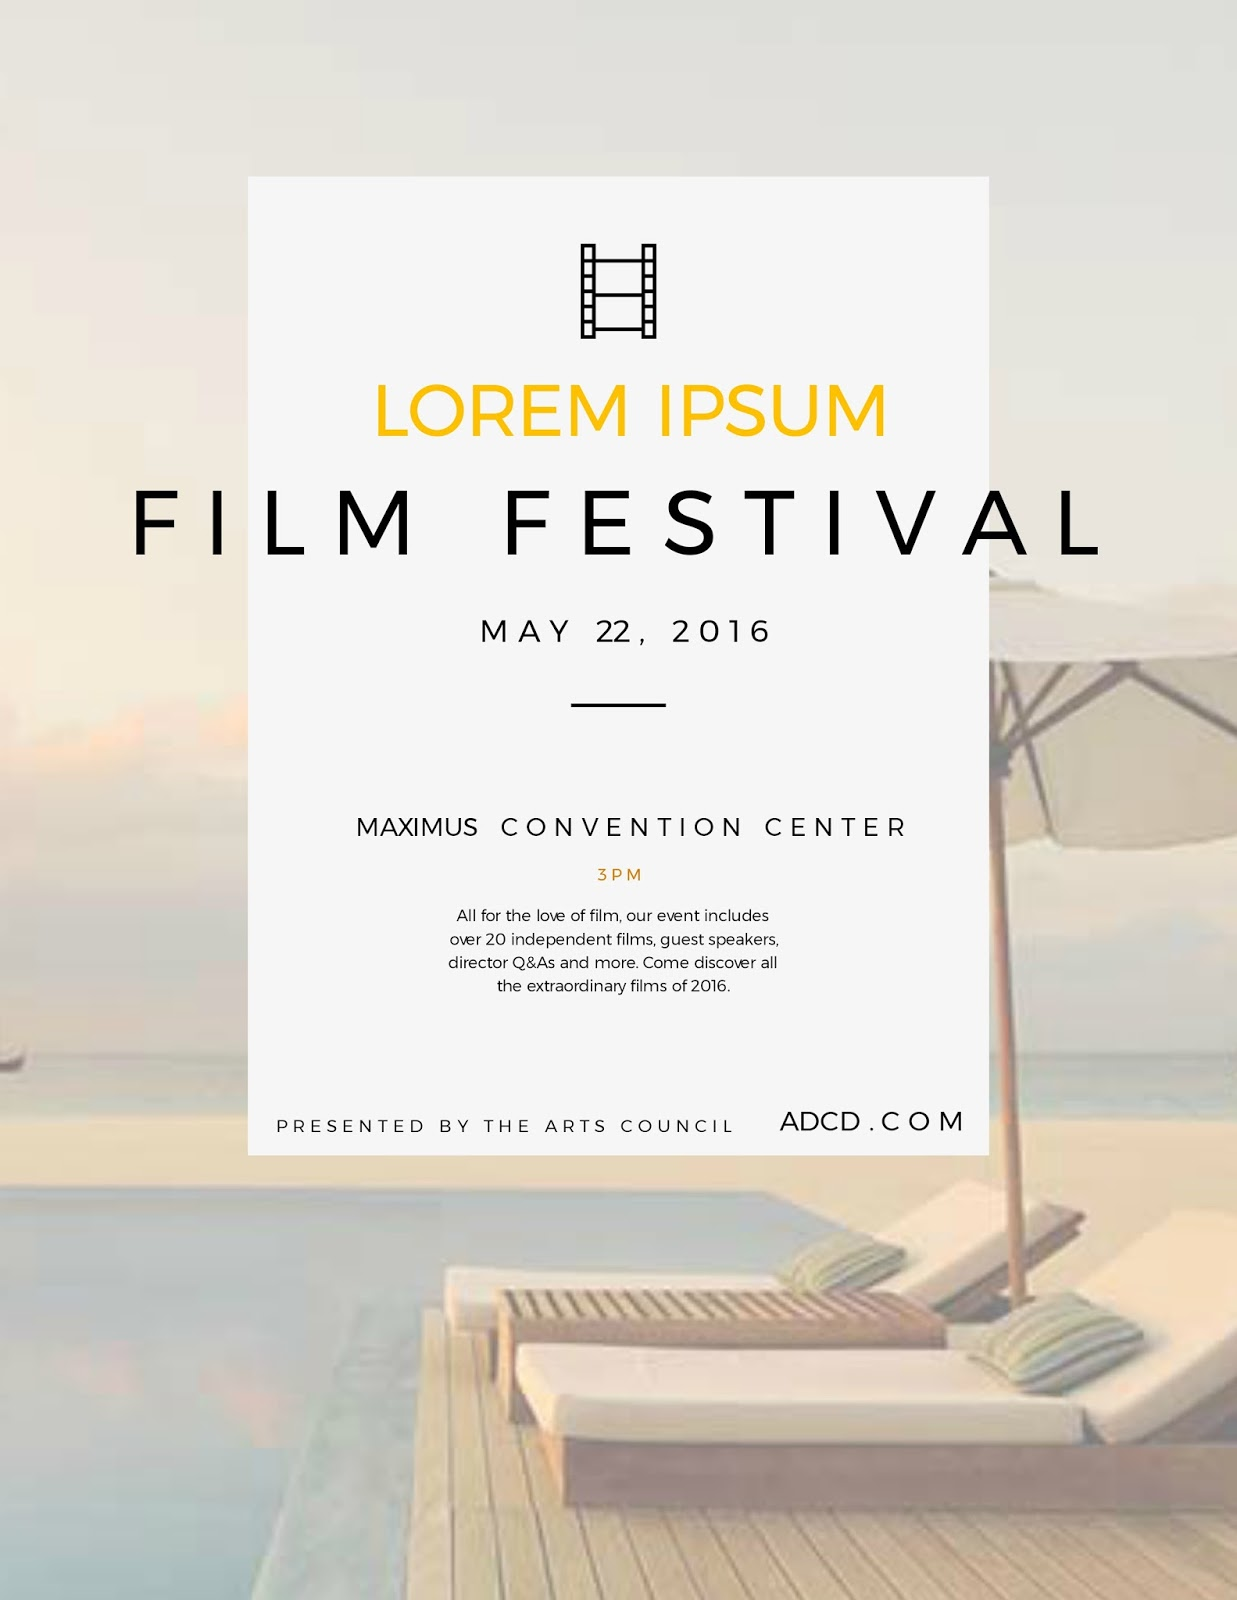 Film Festival Poster Ideas